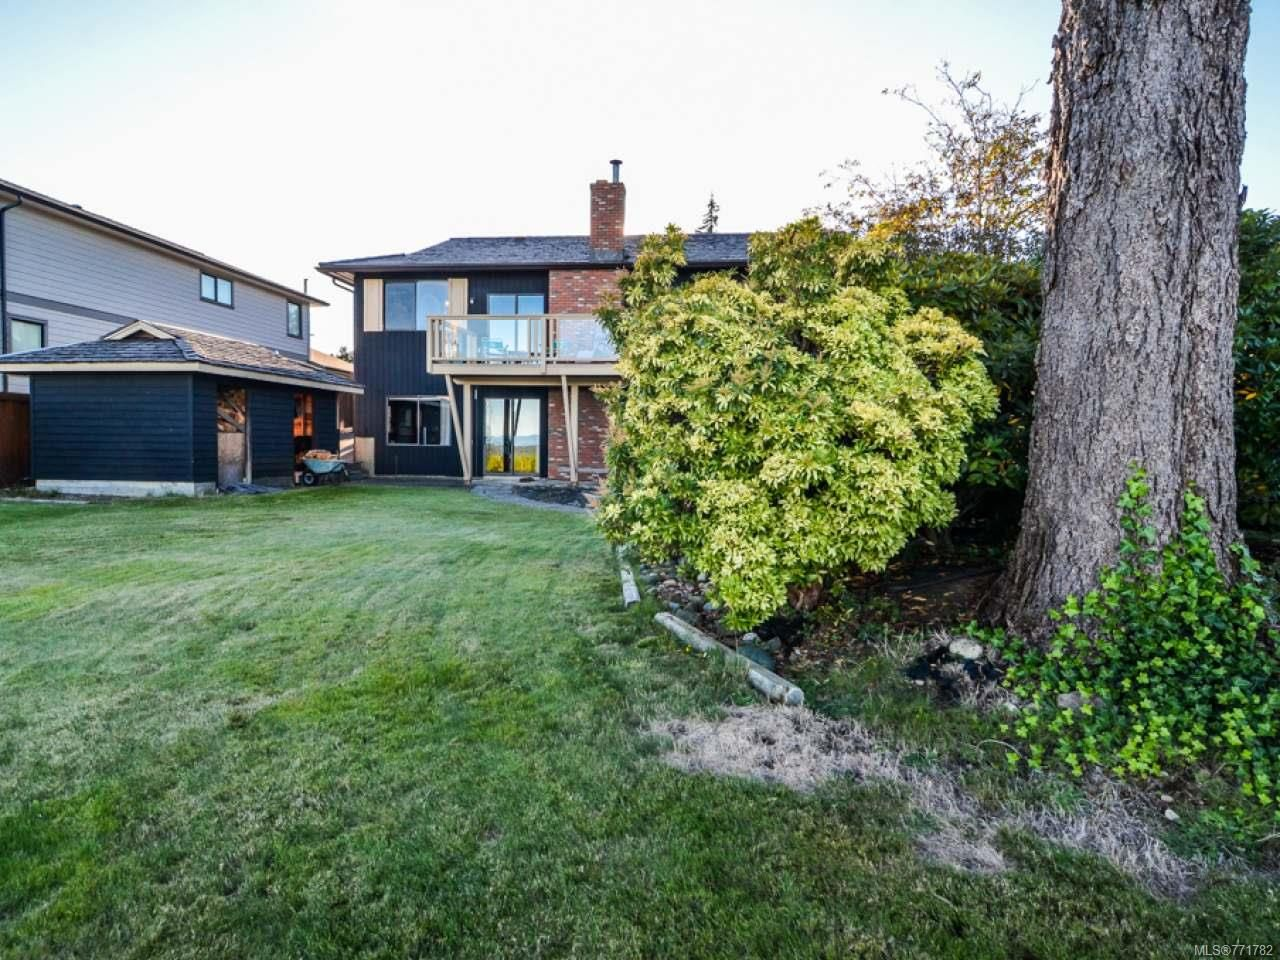 Photo 47: Photos: 451 S McLean St in CAMPBELL RIVER: CR Campbell River Central House for sale (Campbell River)  : MLS®# 771782